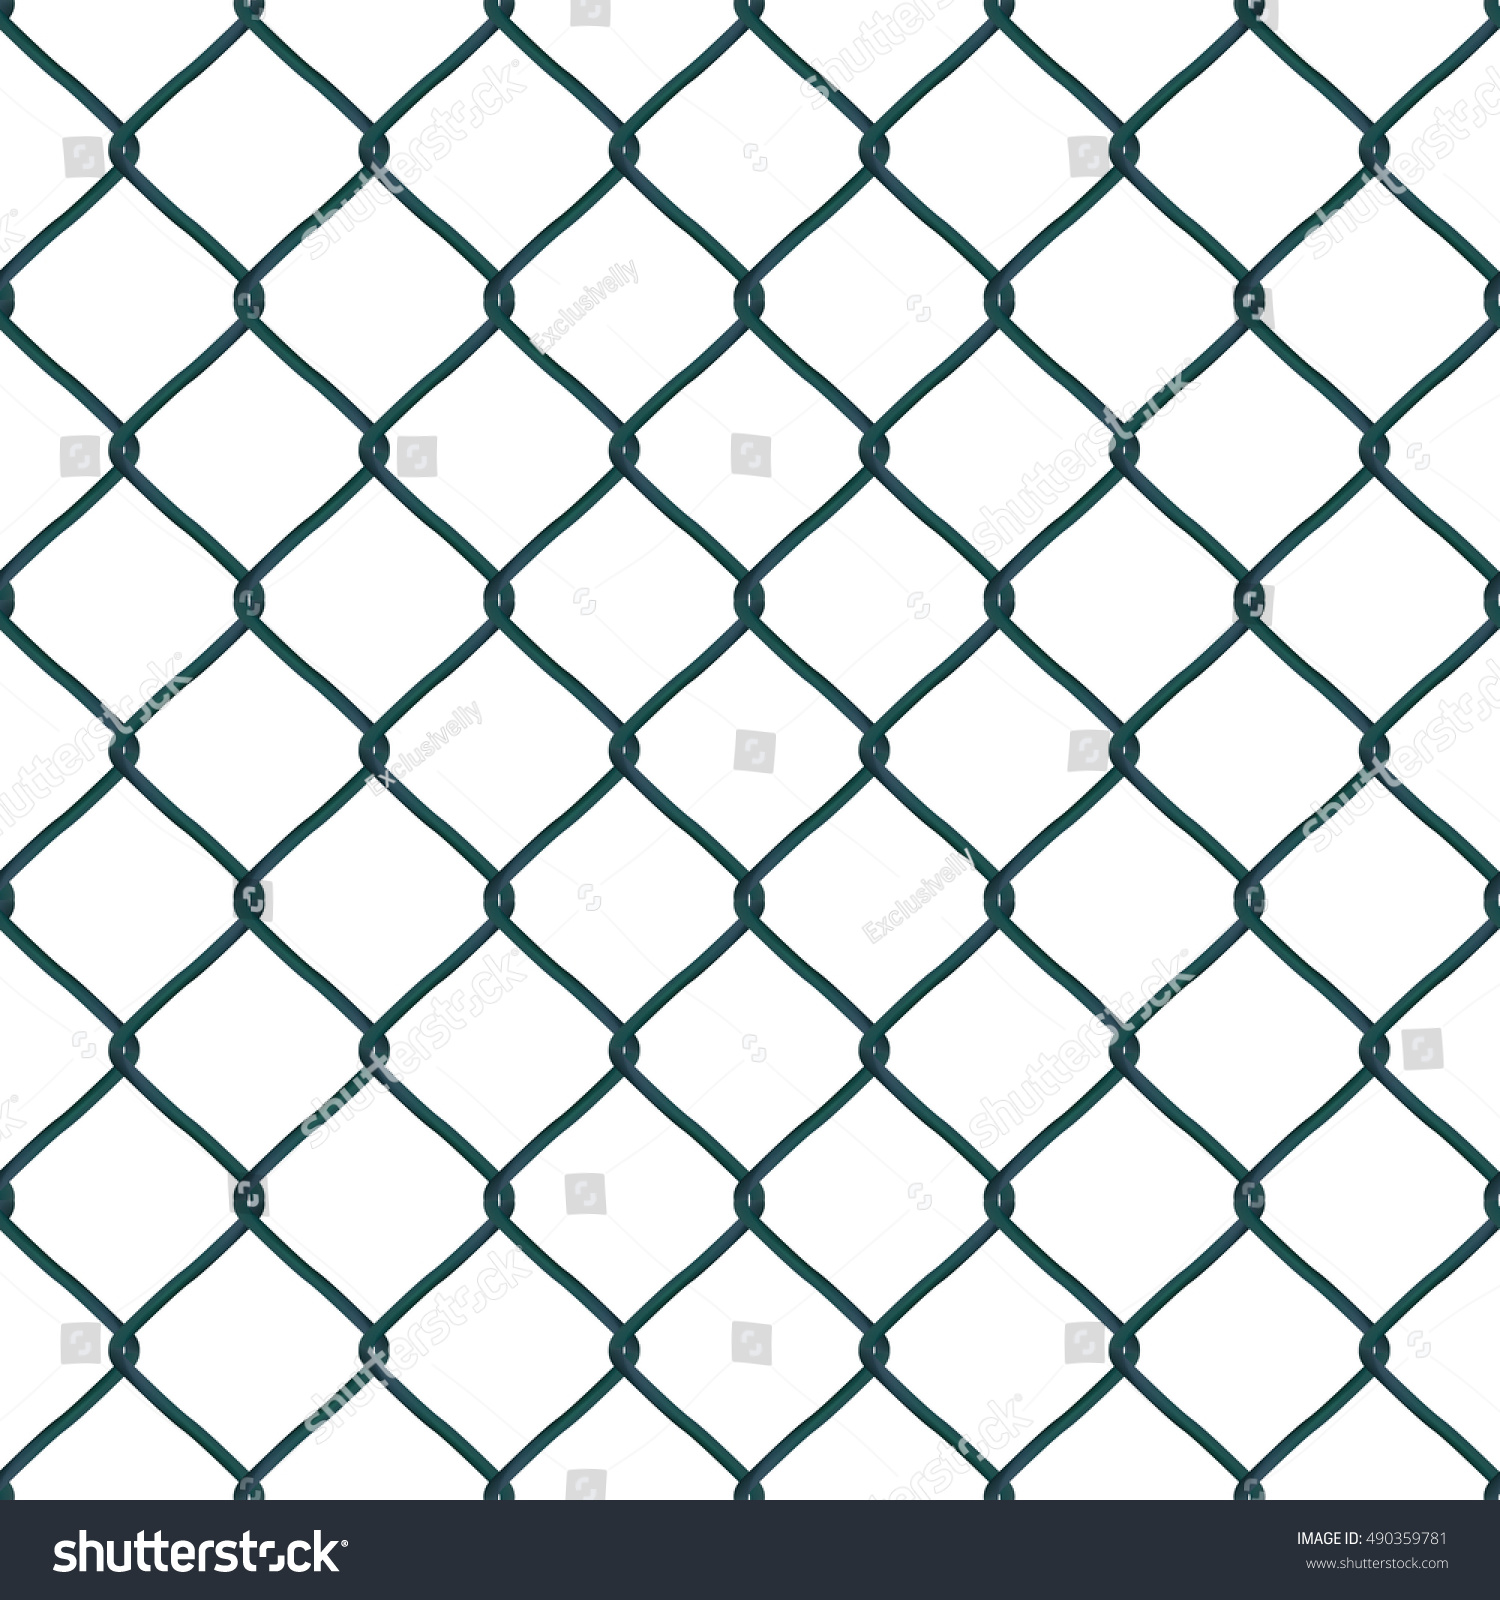 chain link fence background. Unique Fence Transparent Chain Link Fence Texture White Seamless Structure Of  Metal Mesh Fence For Chain Link Fence Background